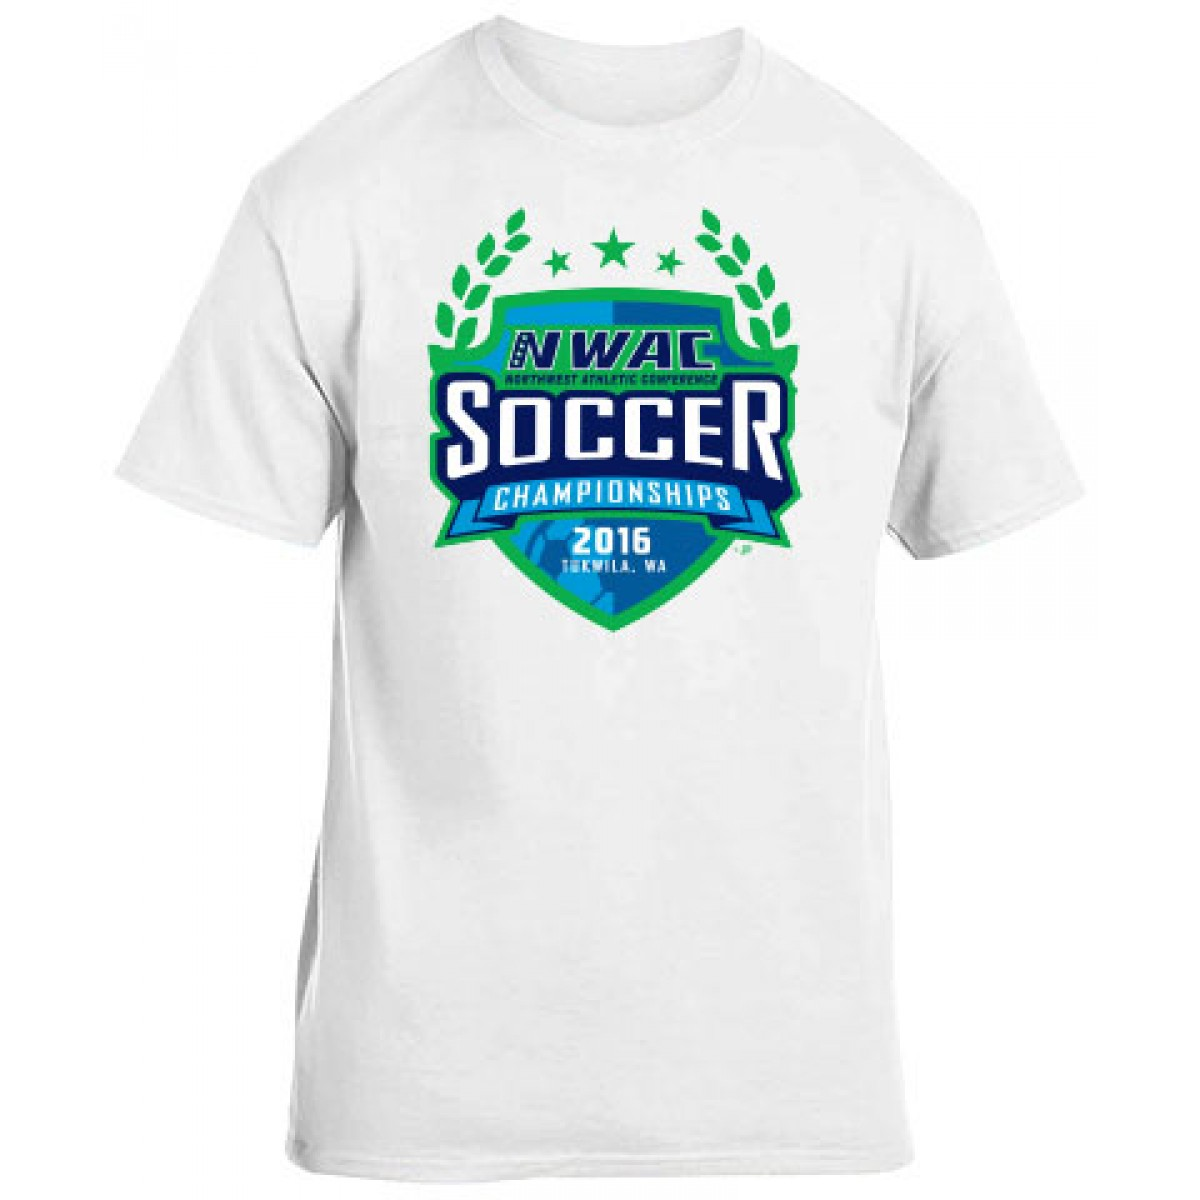 2016 NWAC Soccer Championships Special Item-White-L